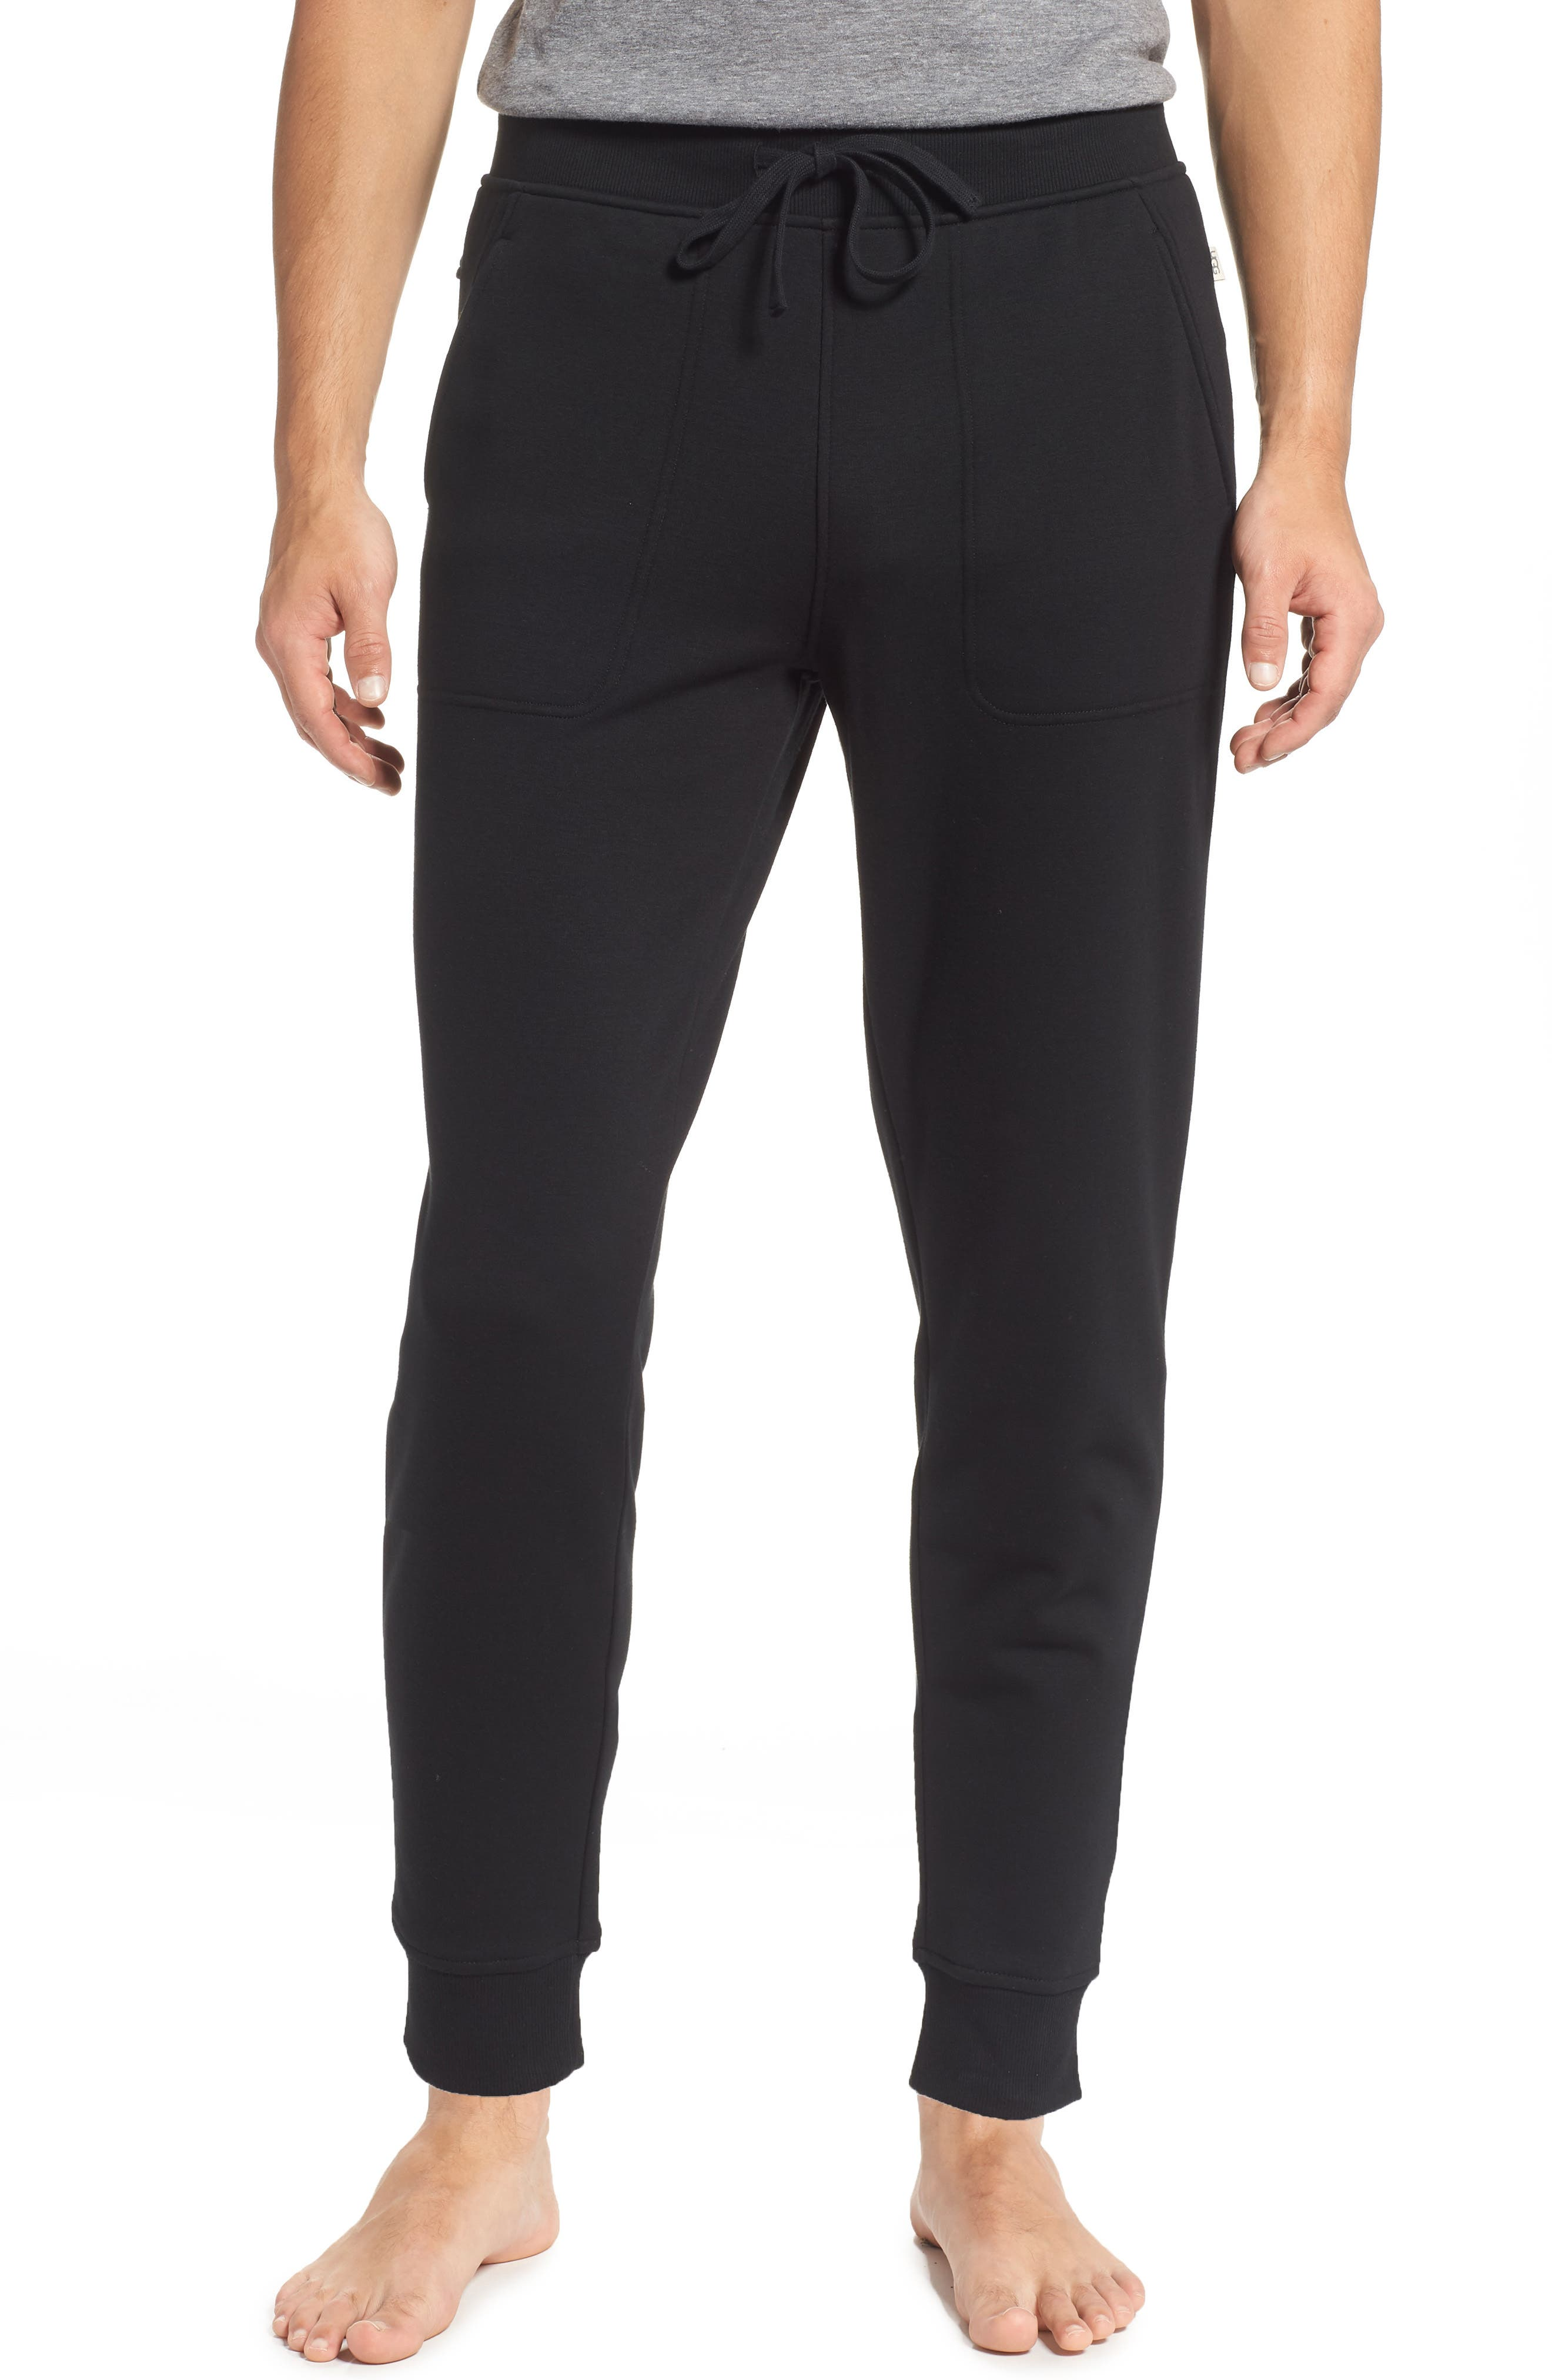 A stretchy heathered-cotton blend means superior comfort in classic joggers with a laid-back feel. Style Name: UGG Hank Joggers. Style Number: 5913195. Available in stores.